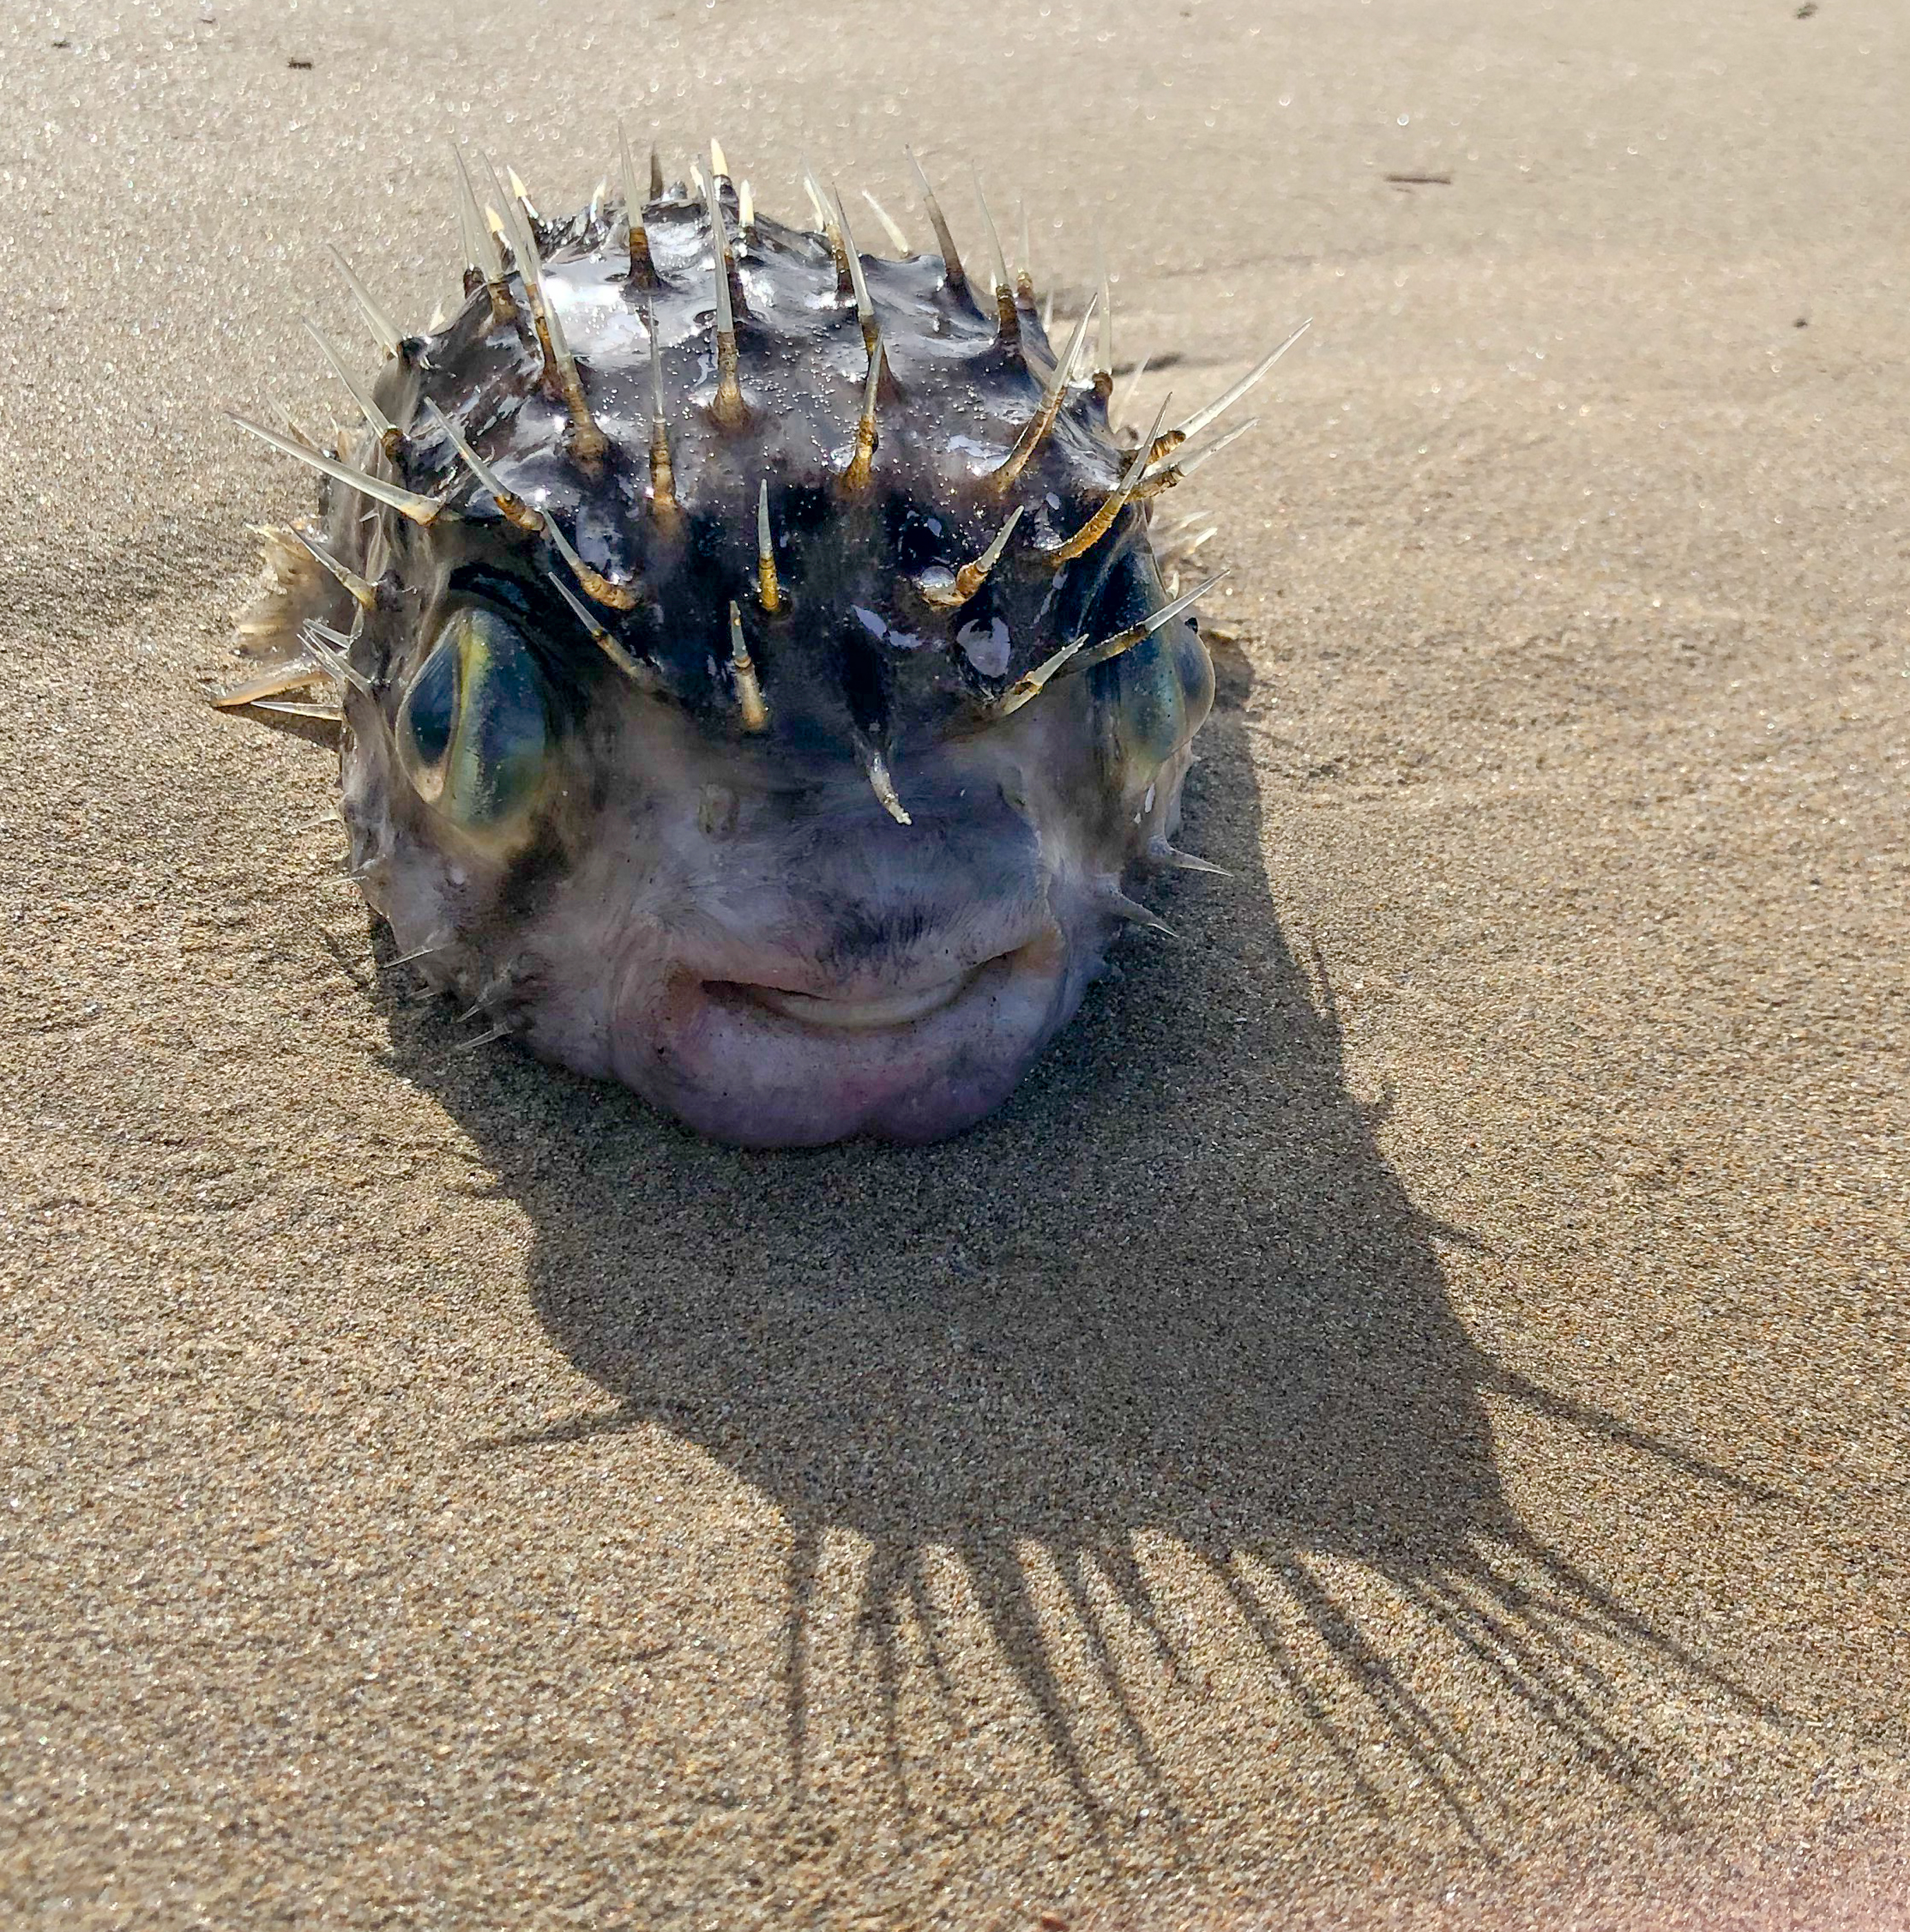 Puffer fish stranded on beach